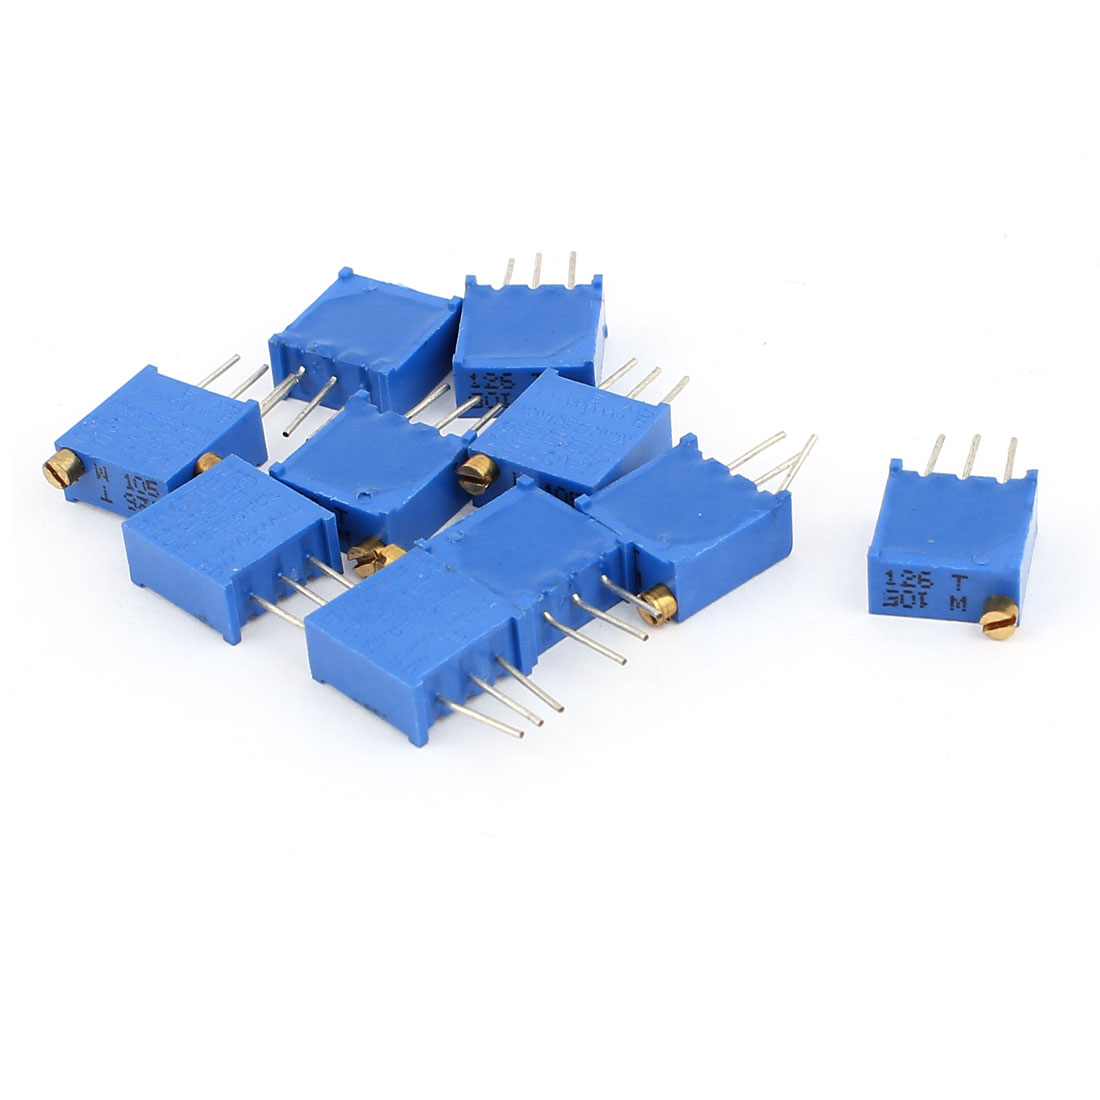 10 Pcs 3296W 1M ohm Variable Resistor Adjustable Resistance for Multiturn Potentiometer